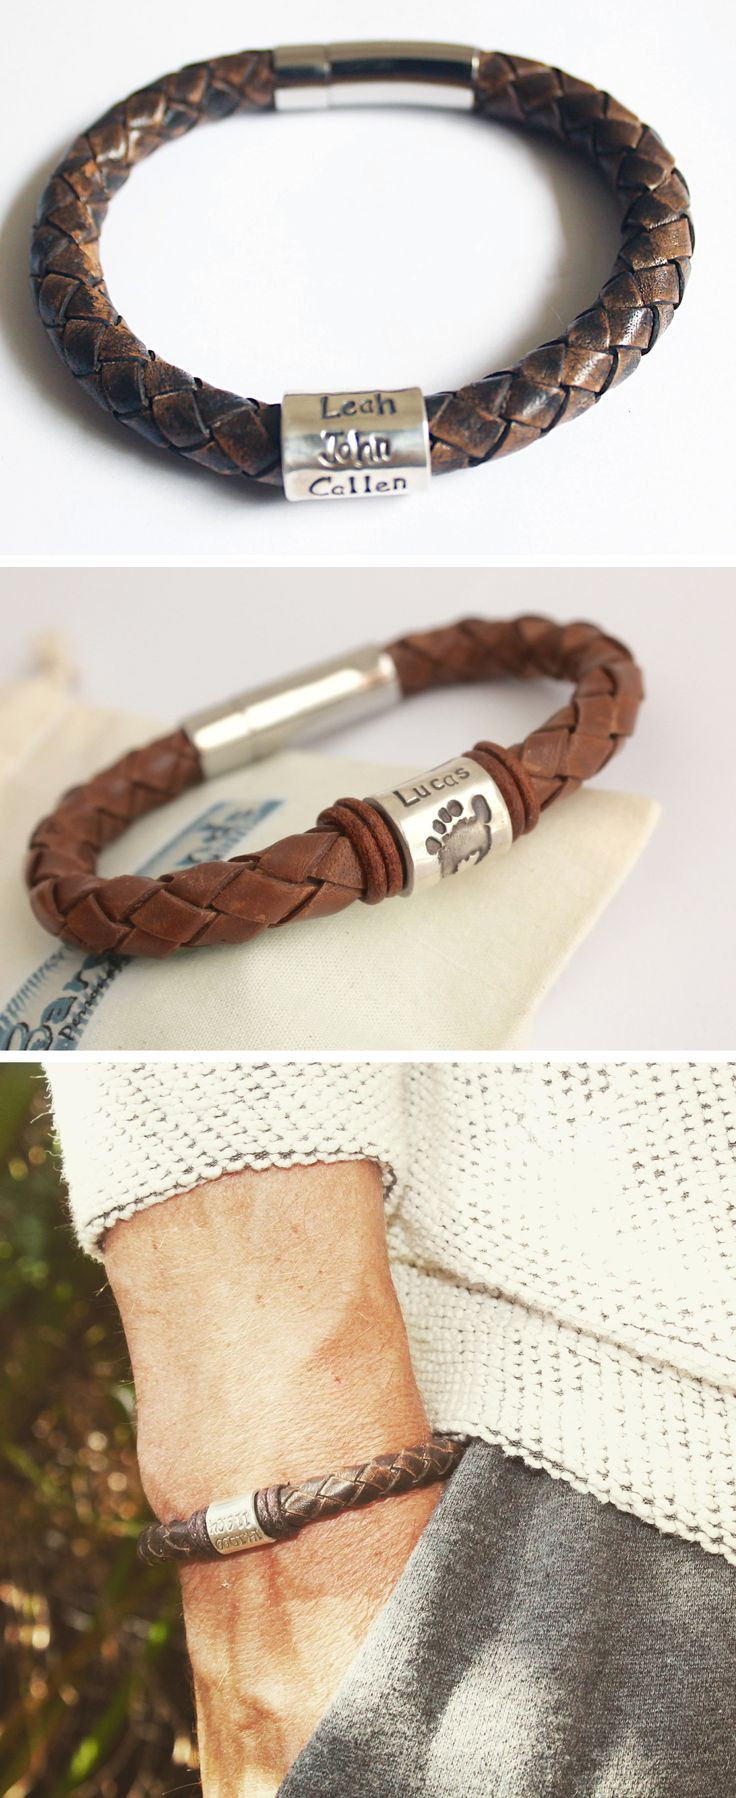 You can get handprints, footprints, names and dates on this Mens Personalised Bracelet 8mm Antique Brown Leather Bracelet and Personalised Silver Name Bead Bracelet. Mens leather bracelet. Fathers Day. Christmas gift for Dad. Handmade gifts for Him.